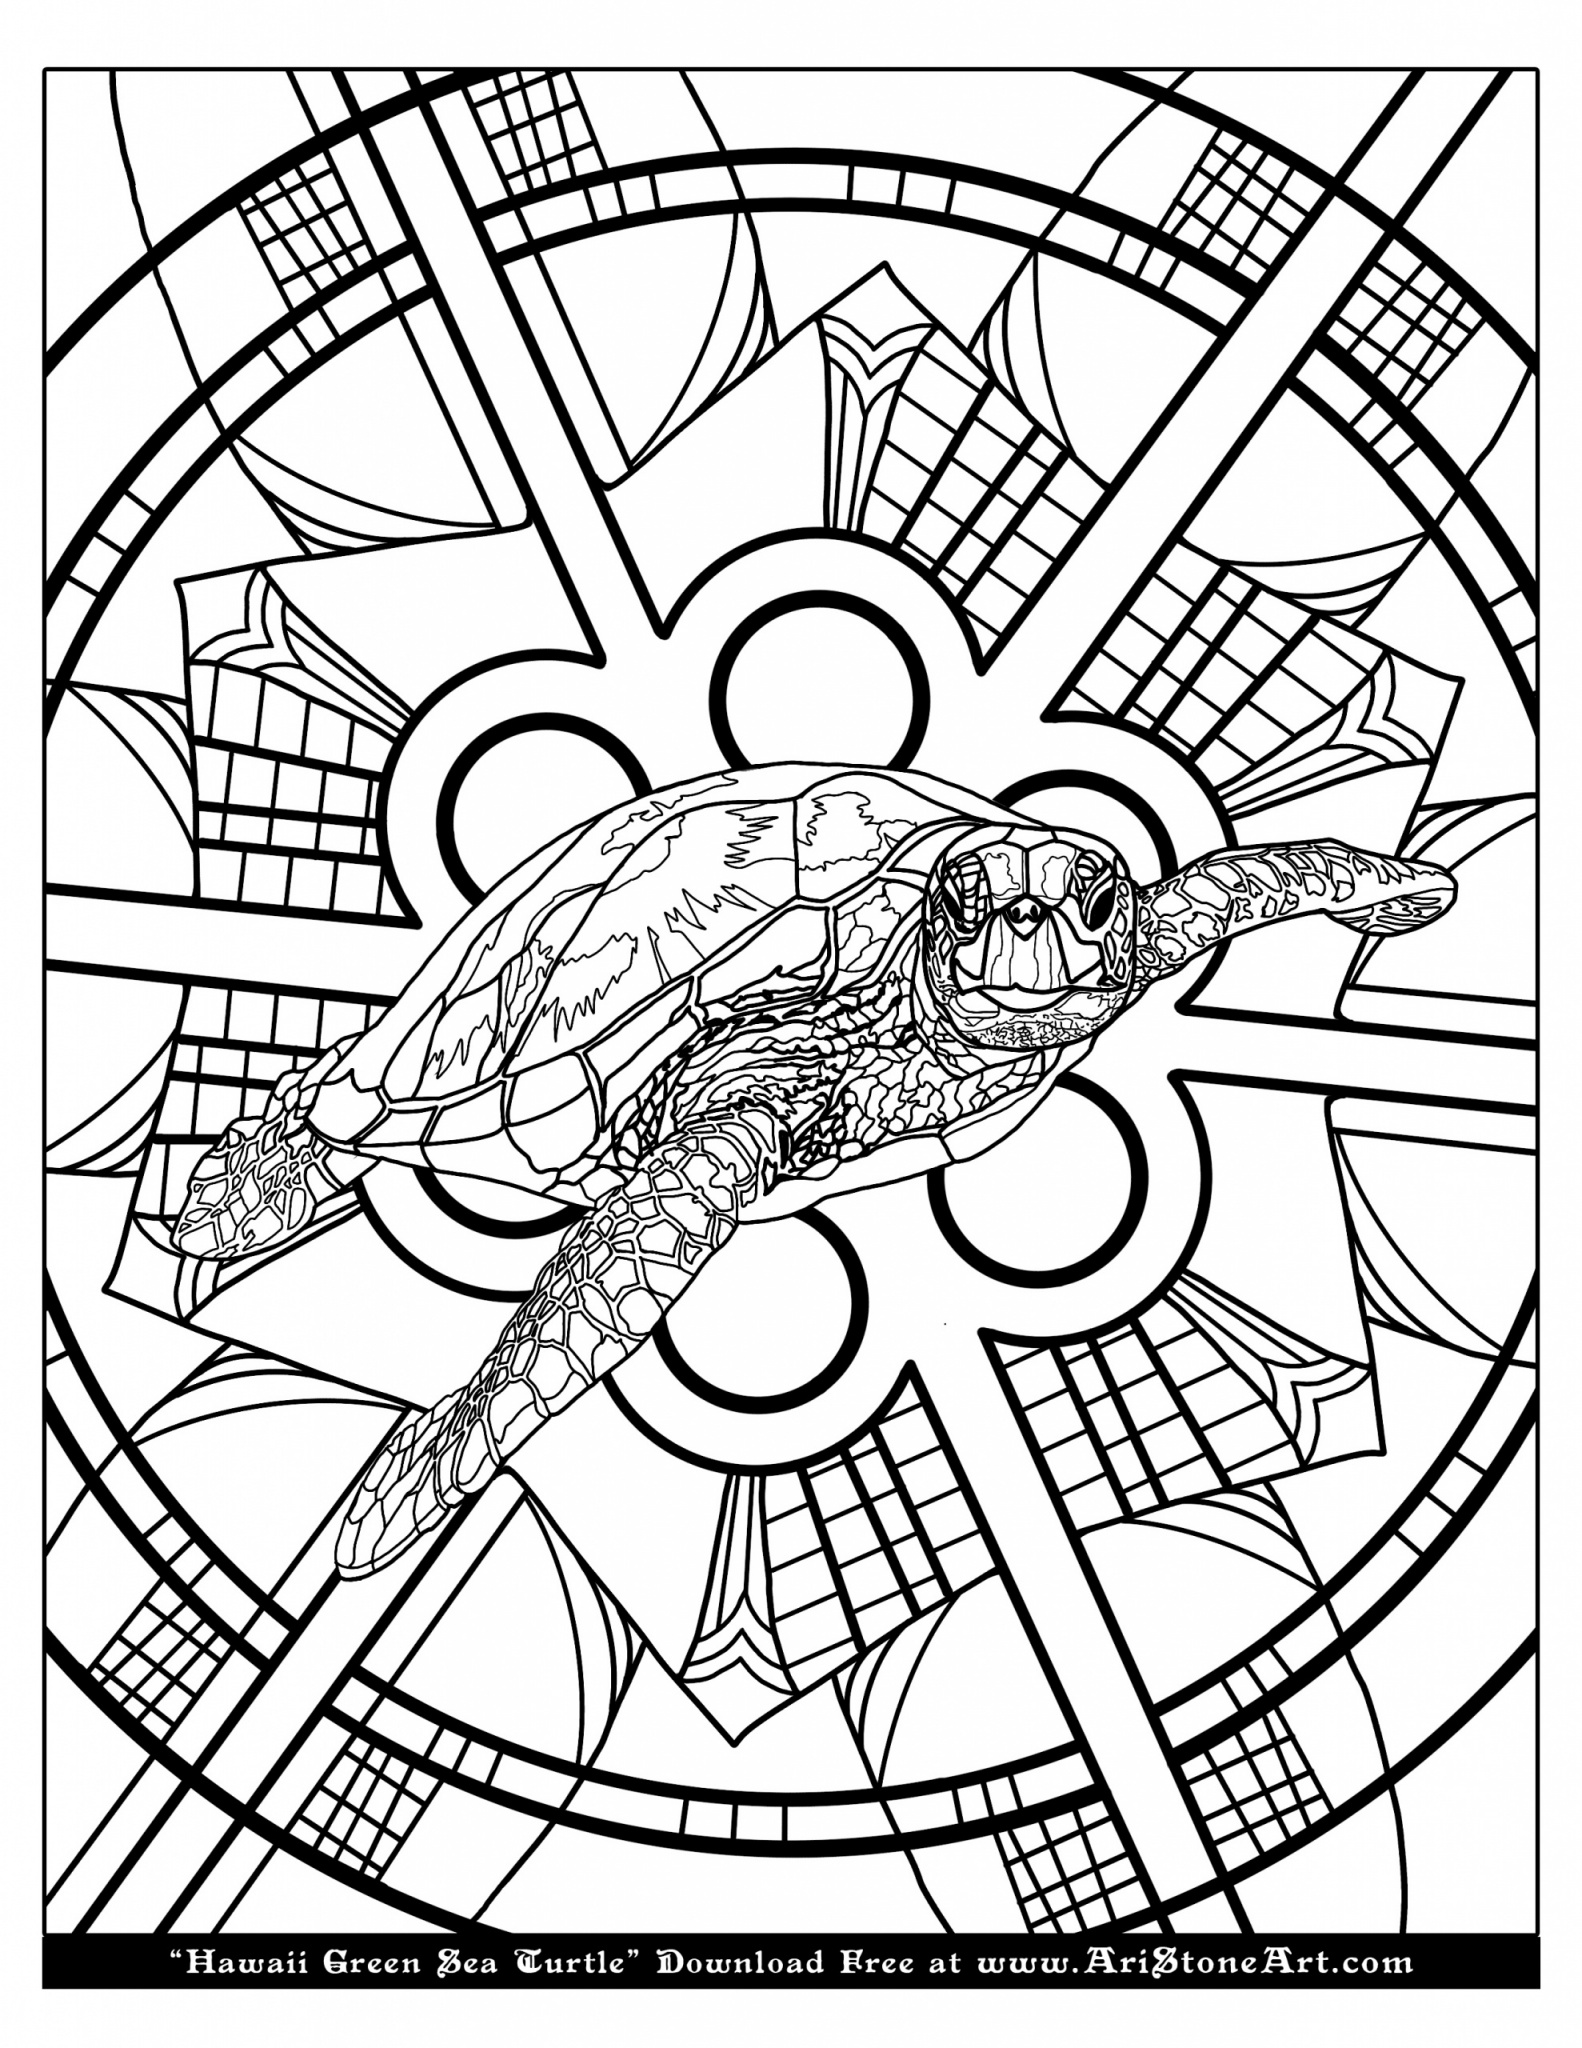 Loggerhead Sea Turtle coloring page | Free Printable Coloring Pages | 2048x1582